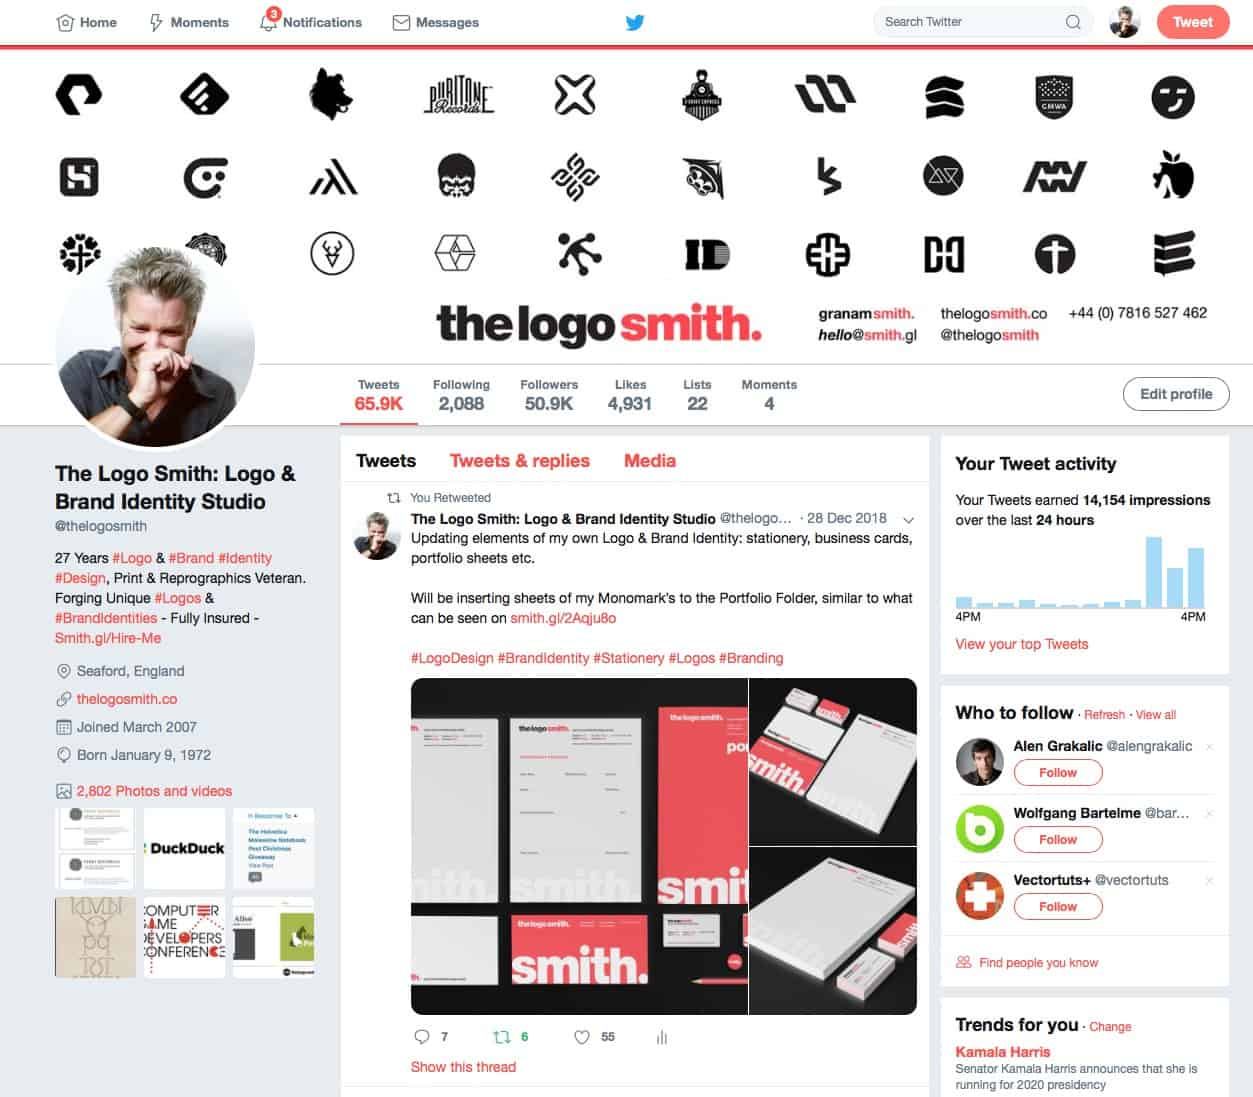 The Logo Smith on Twitter